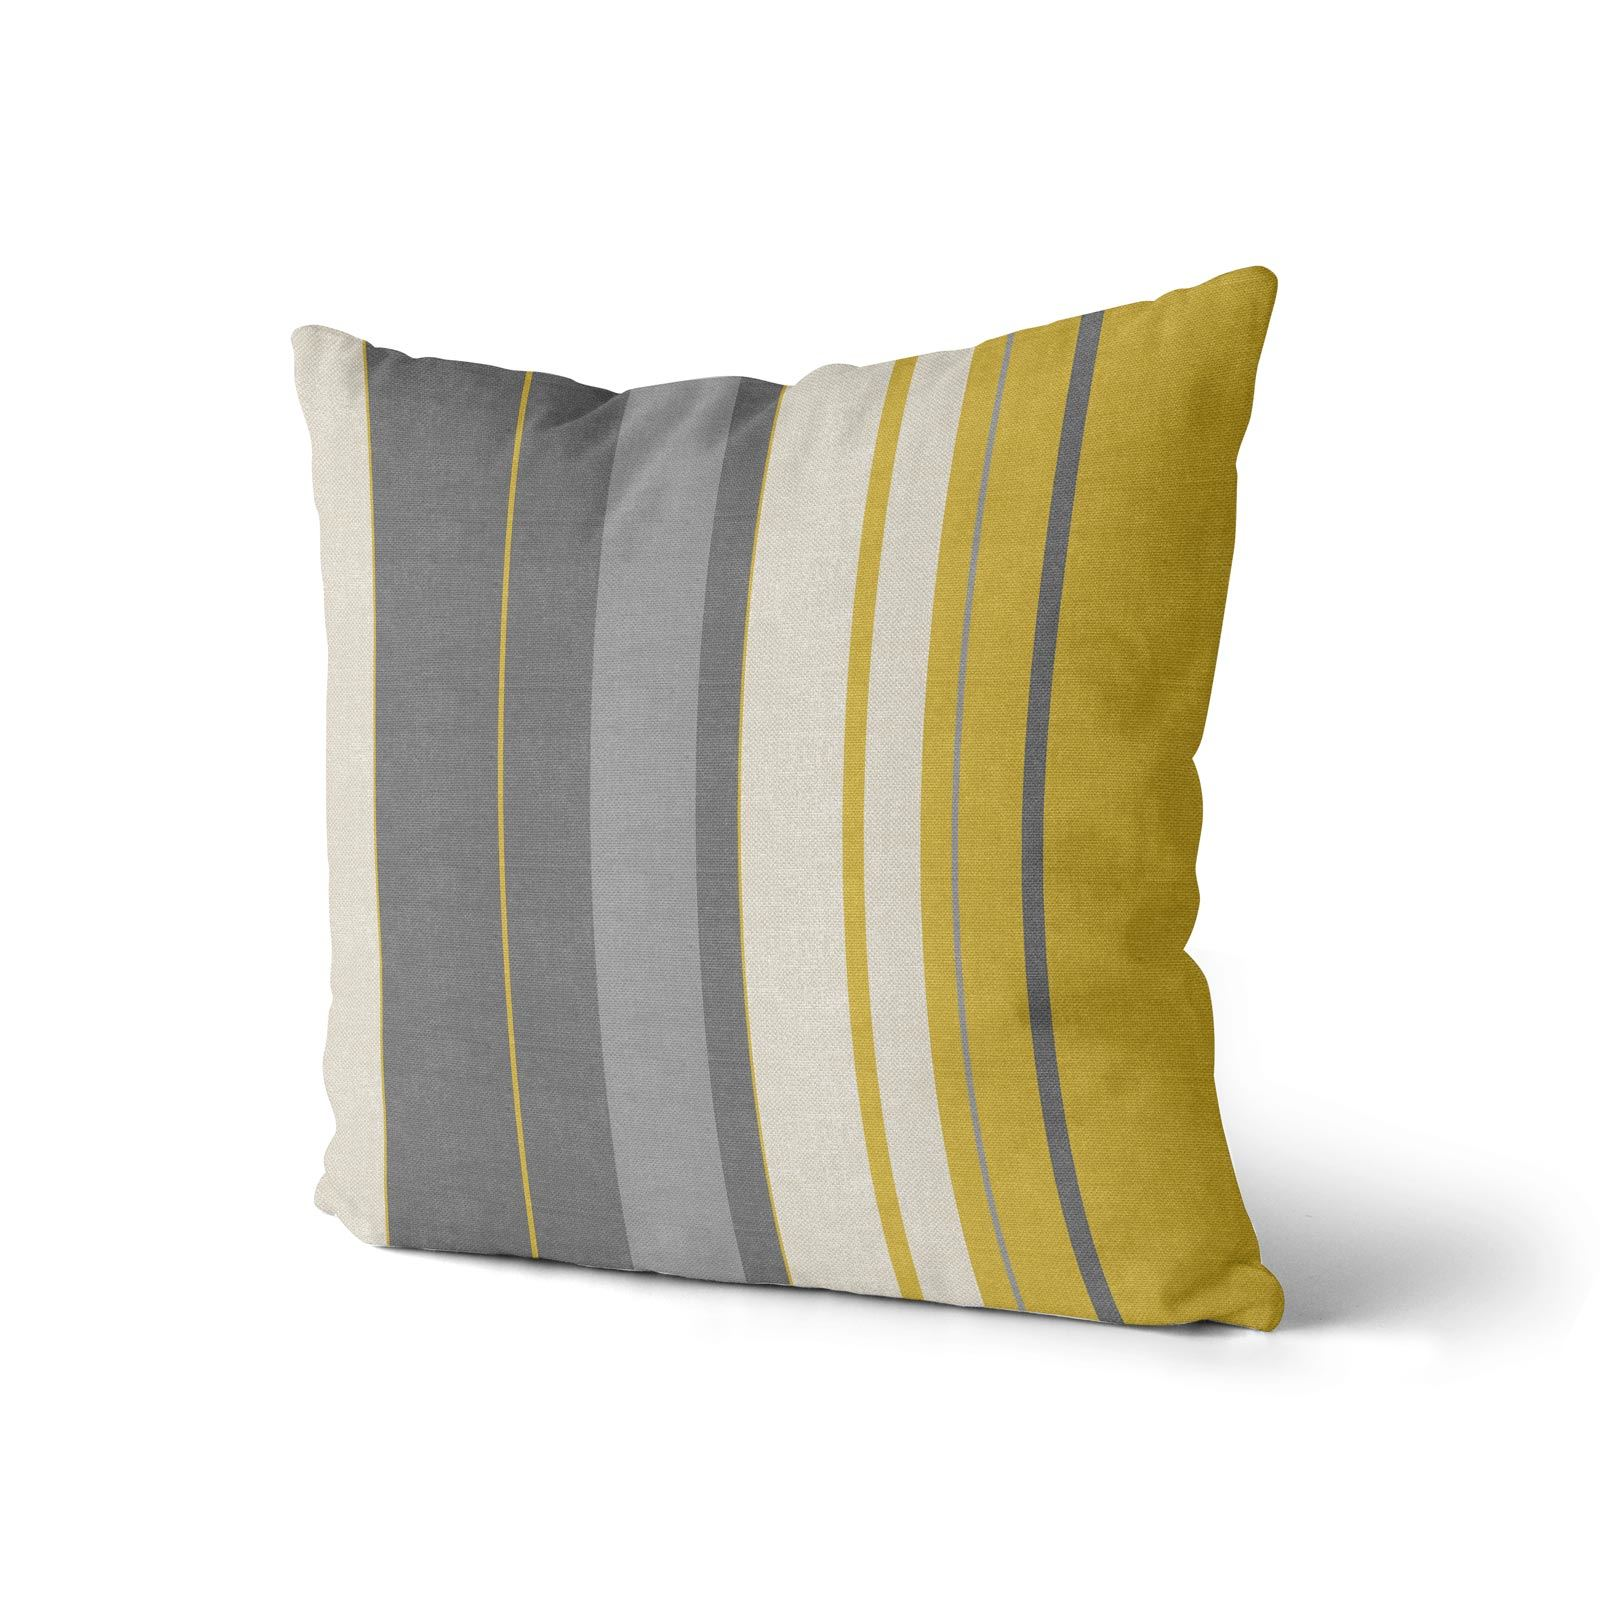 Grey-Ochre-Mustard-Cushion-Cover-Collection-17-034-18-034-Covers-Filled-Cushions thumbnail 101